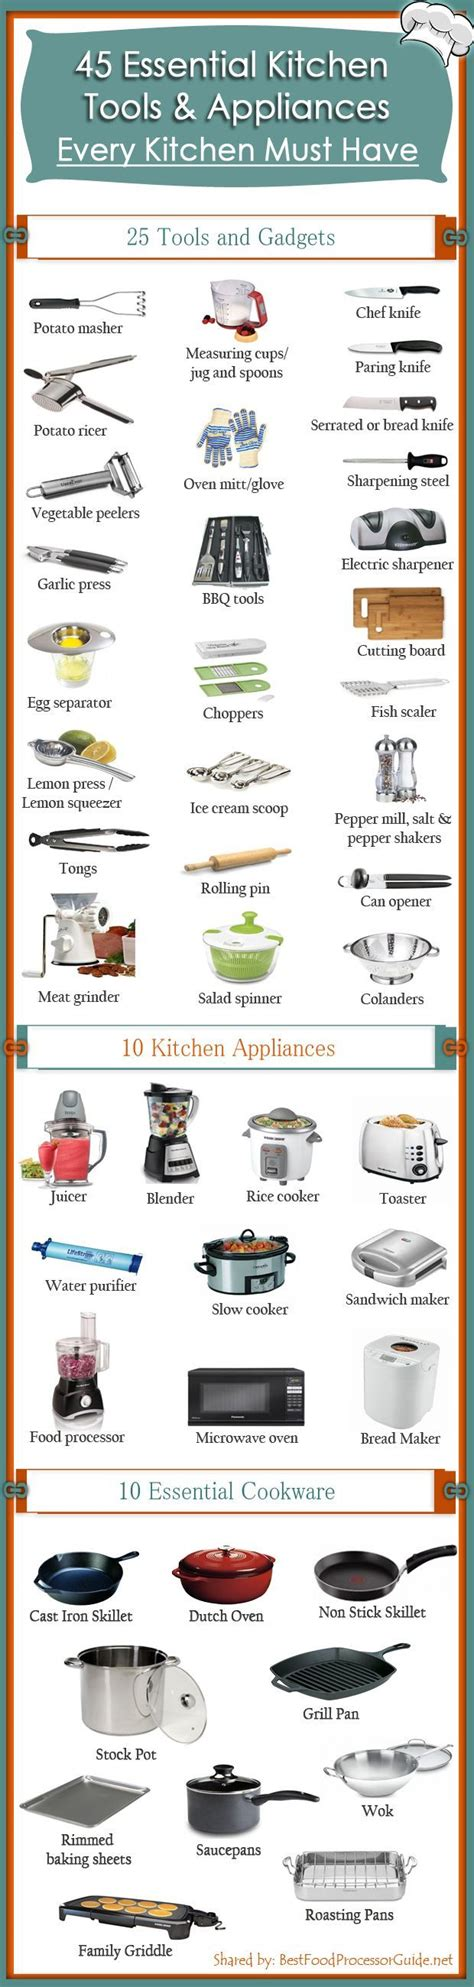 must have kitchen items list 45 essential kitchen tools and appliances every kitchen must have designed by bdhire com